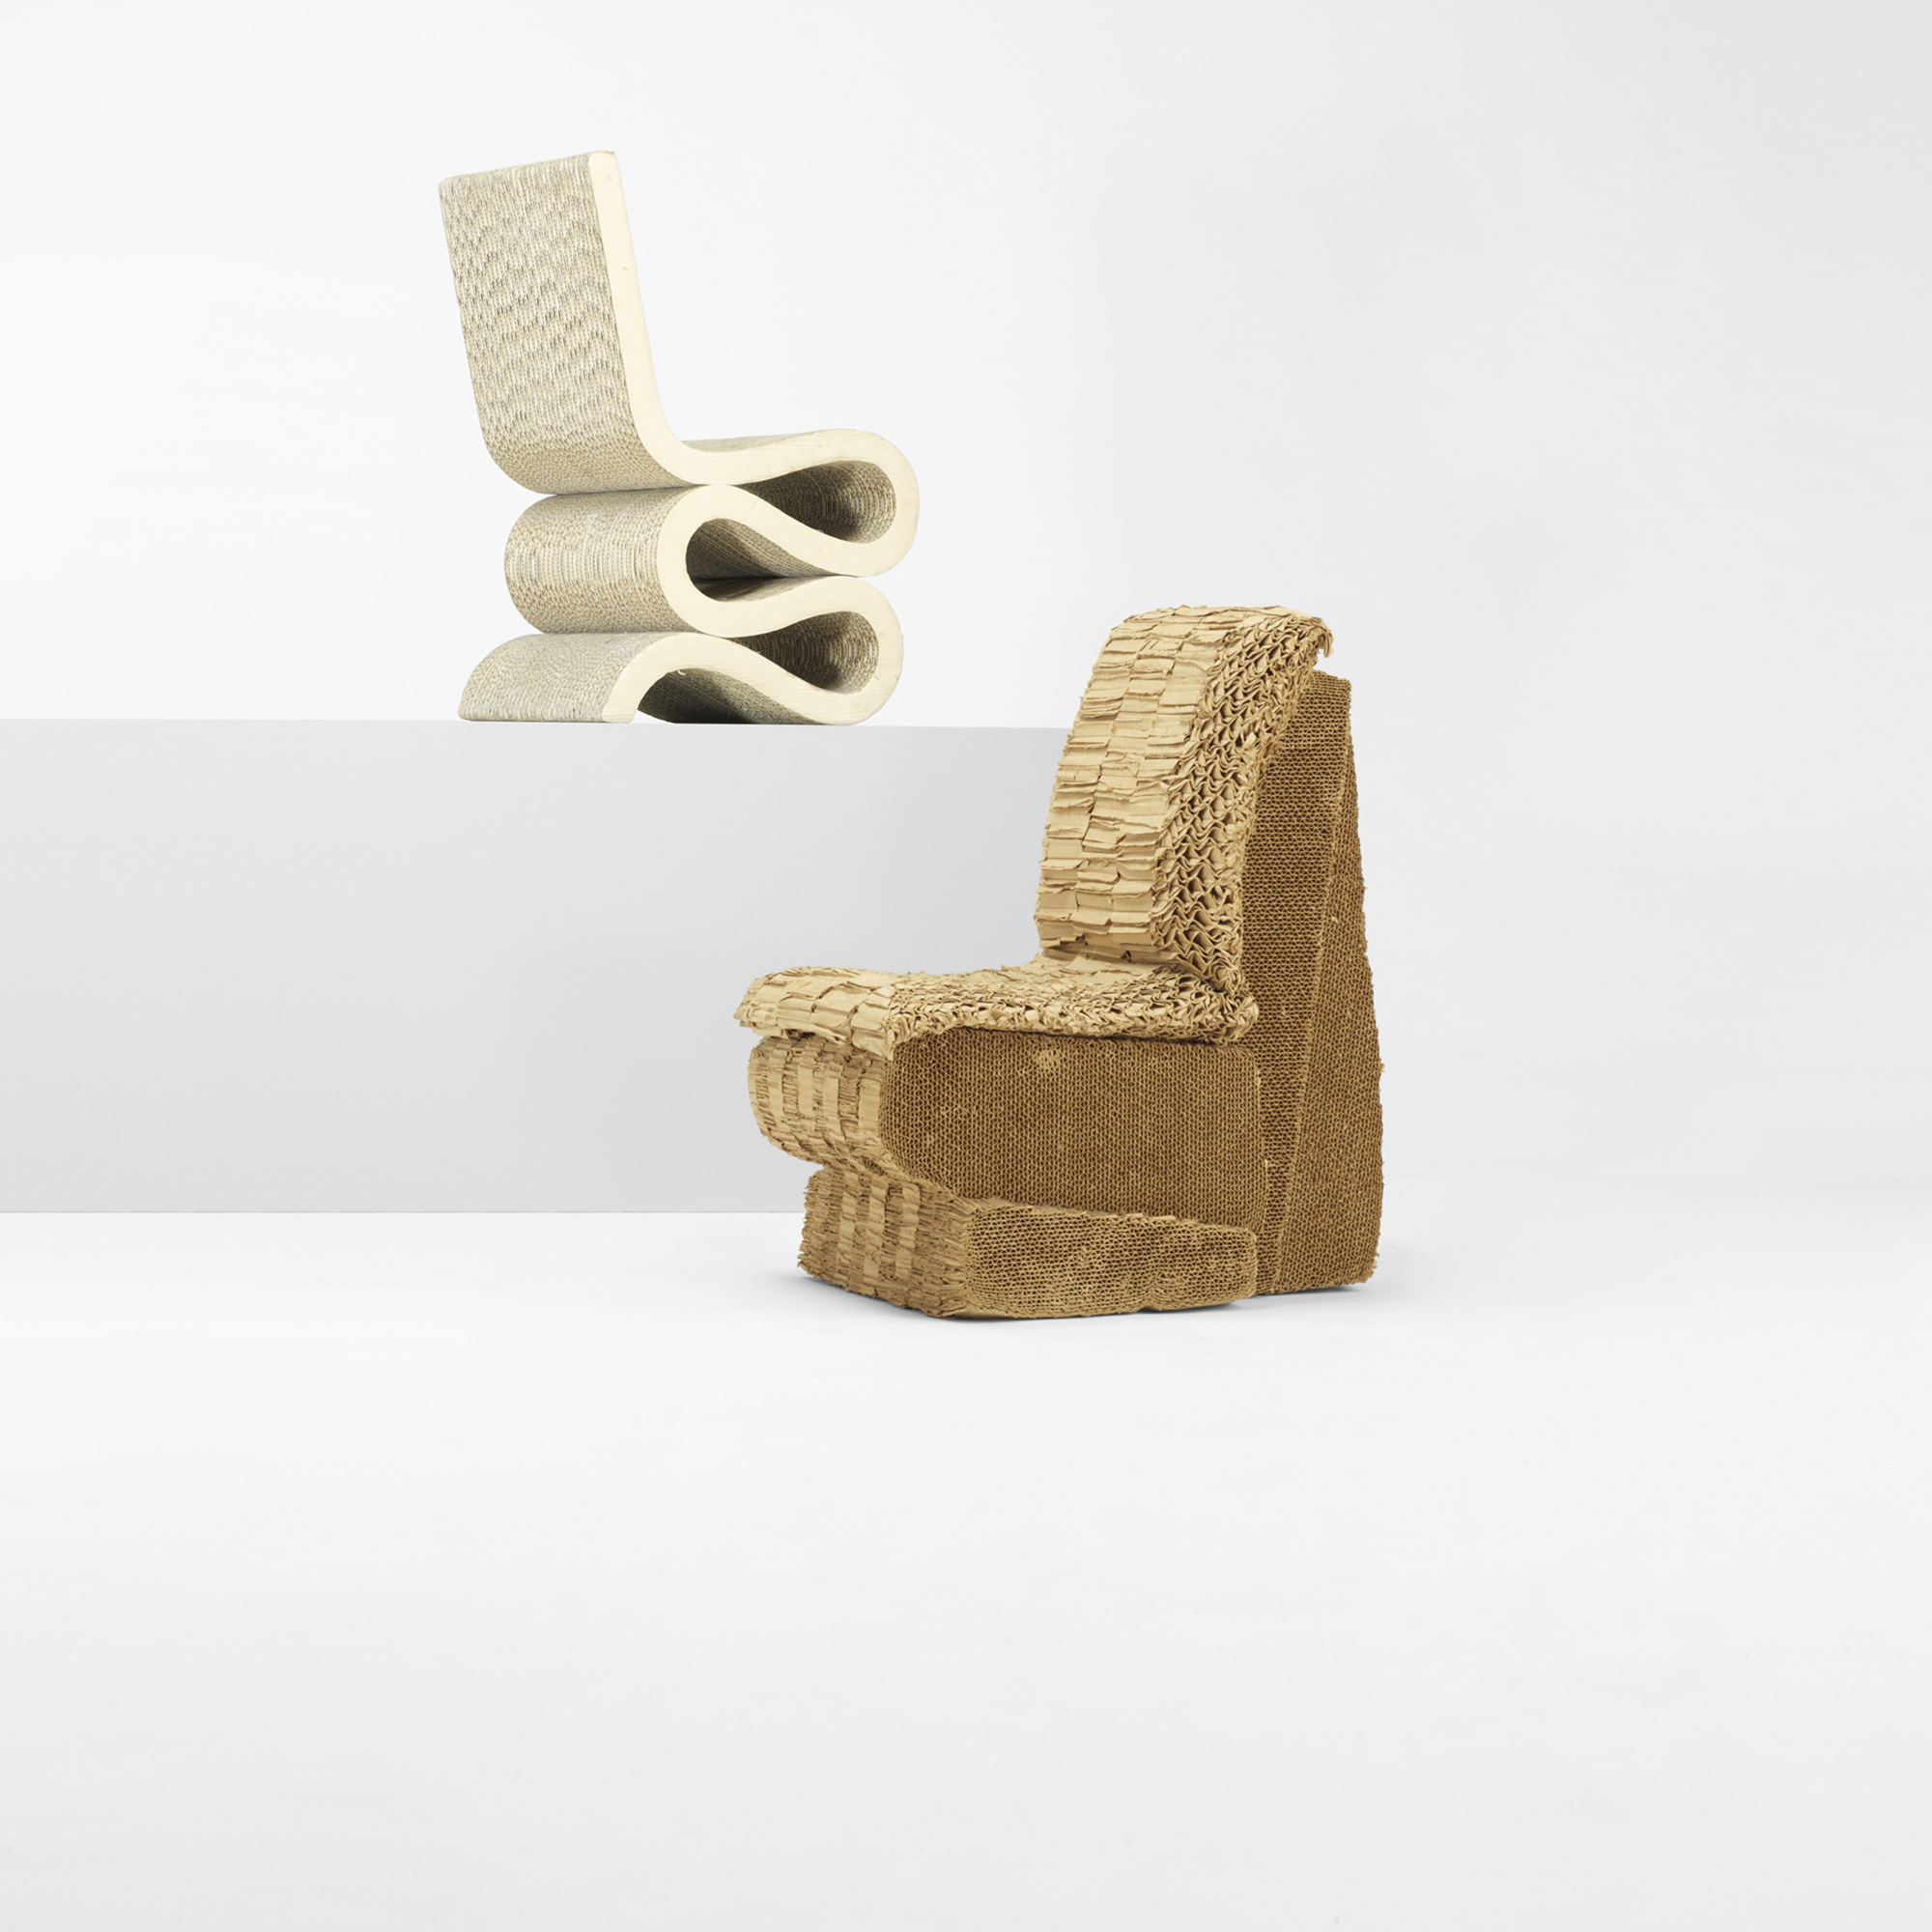 Modern Home Design October 2012: 133: FRANK GEHRY, Sitting Beaver Chair